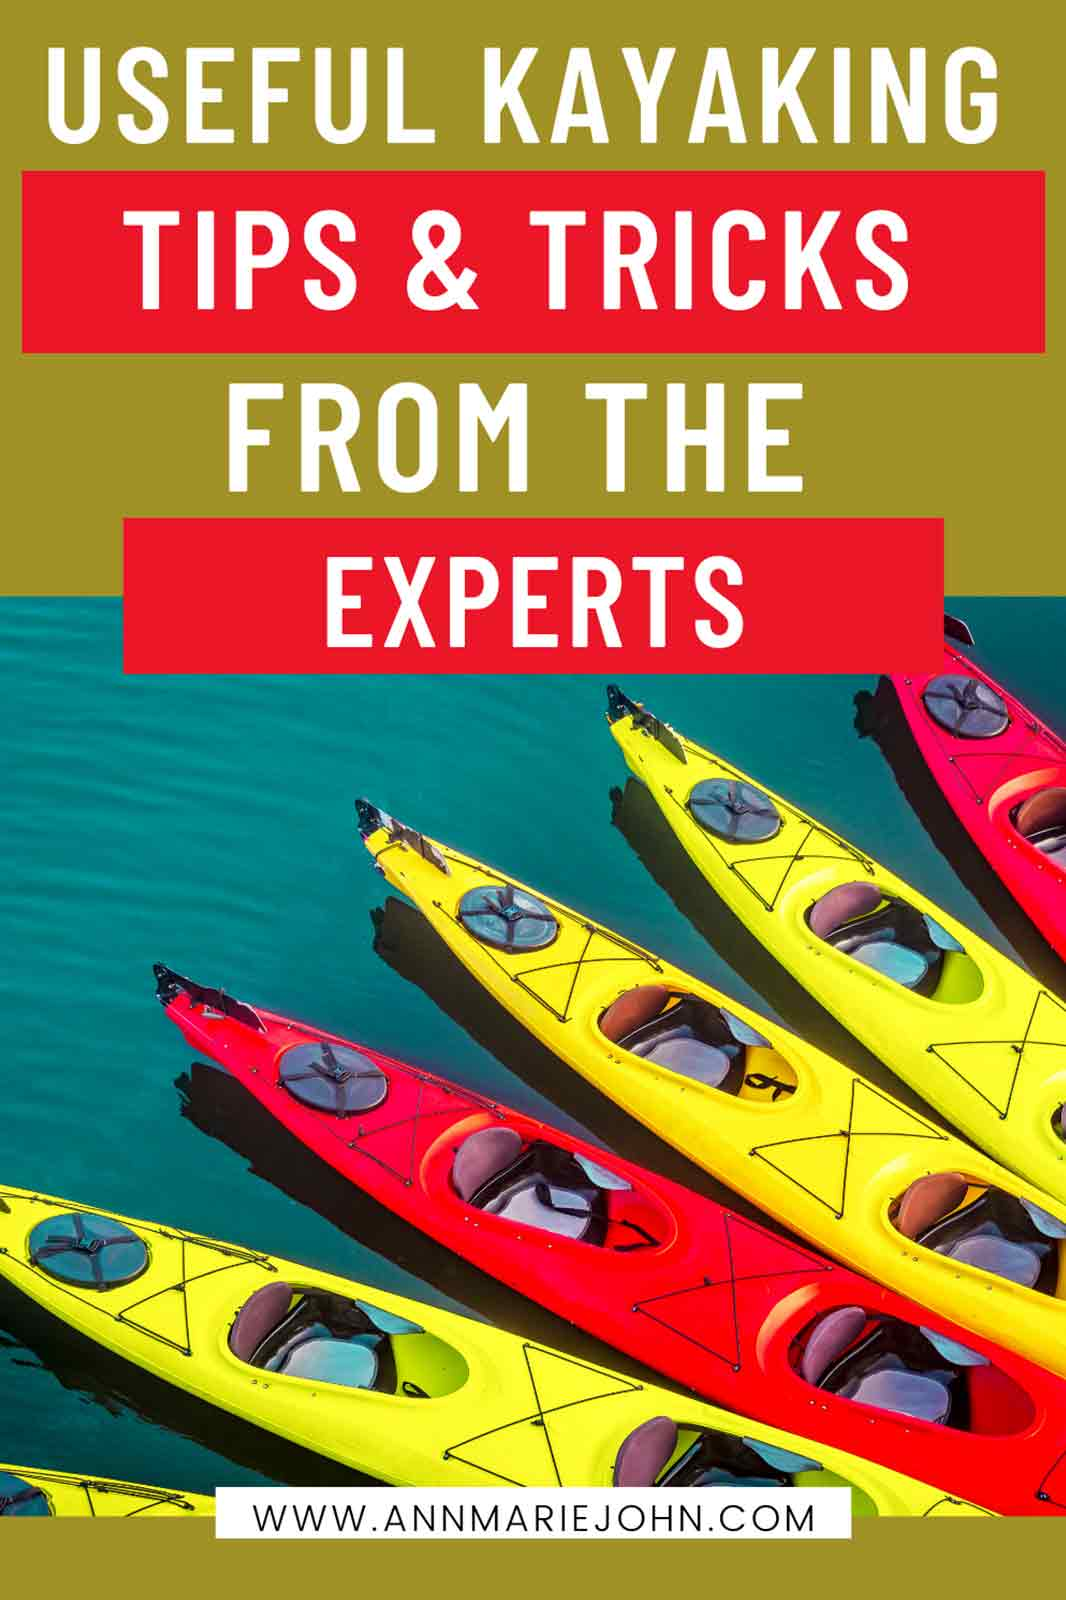 kayaking tips and tricks